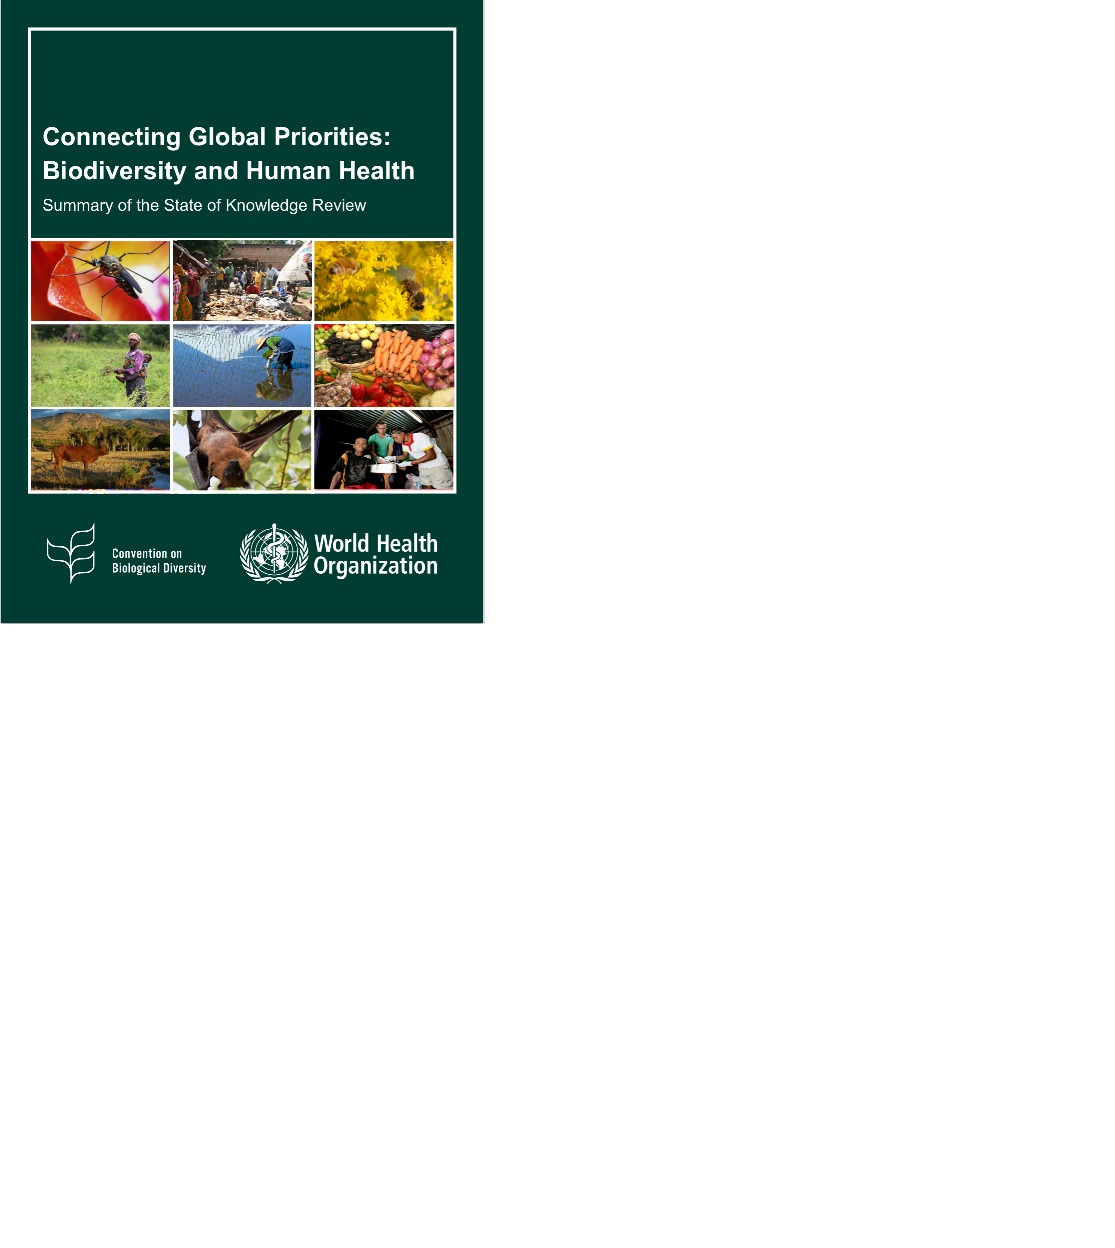 Connecting global priorities: biodiversity and human health - summary of the state of knowledge review